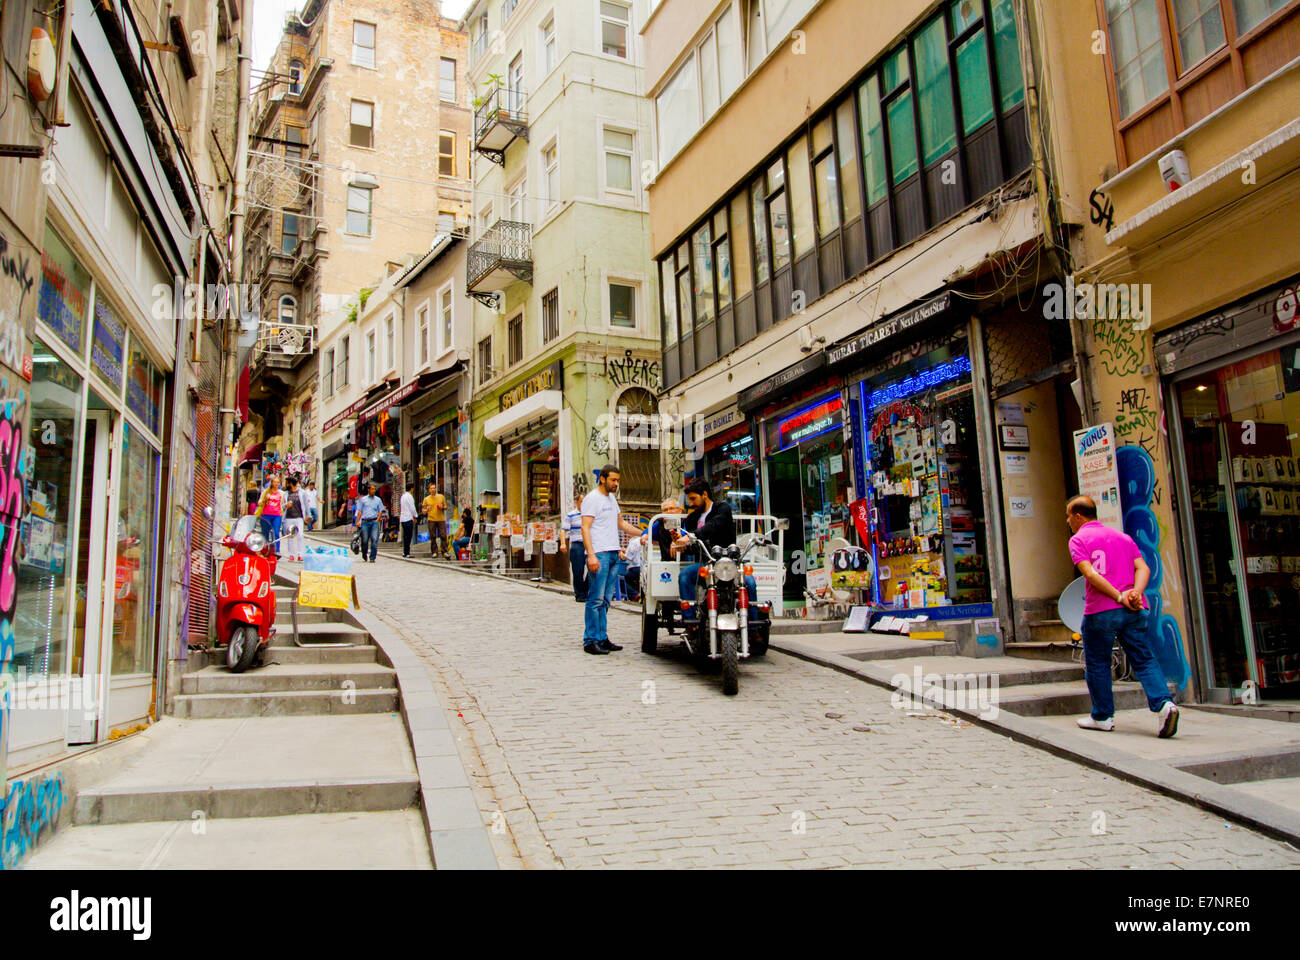 Steep hill towards Galata bridge from Galata tower, Beyoglu district, Istanbul, Turkey, Asia Minor - Stock Image